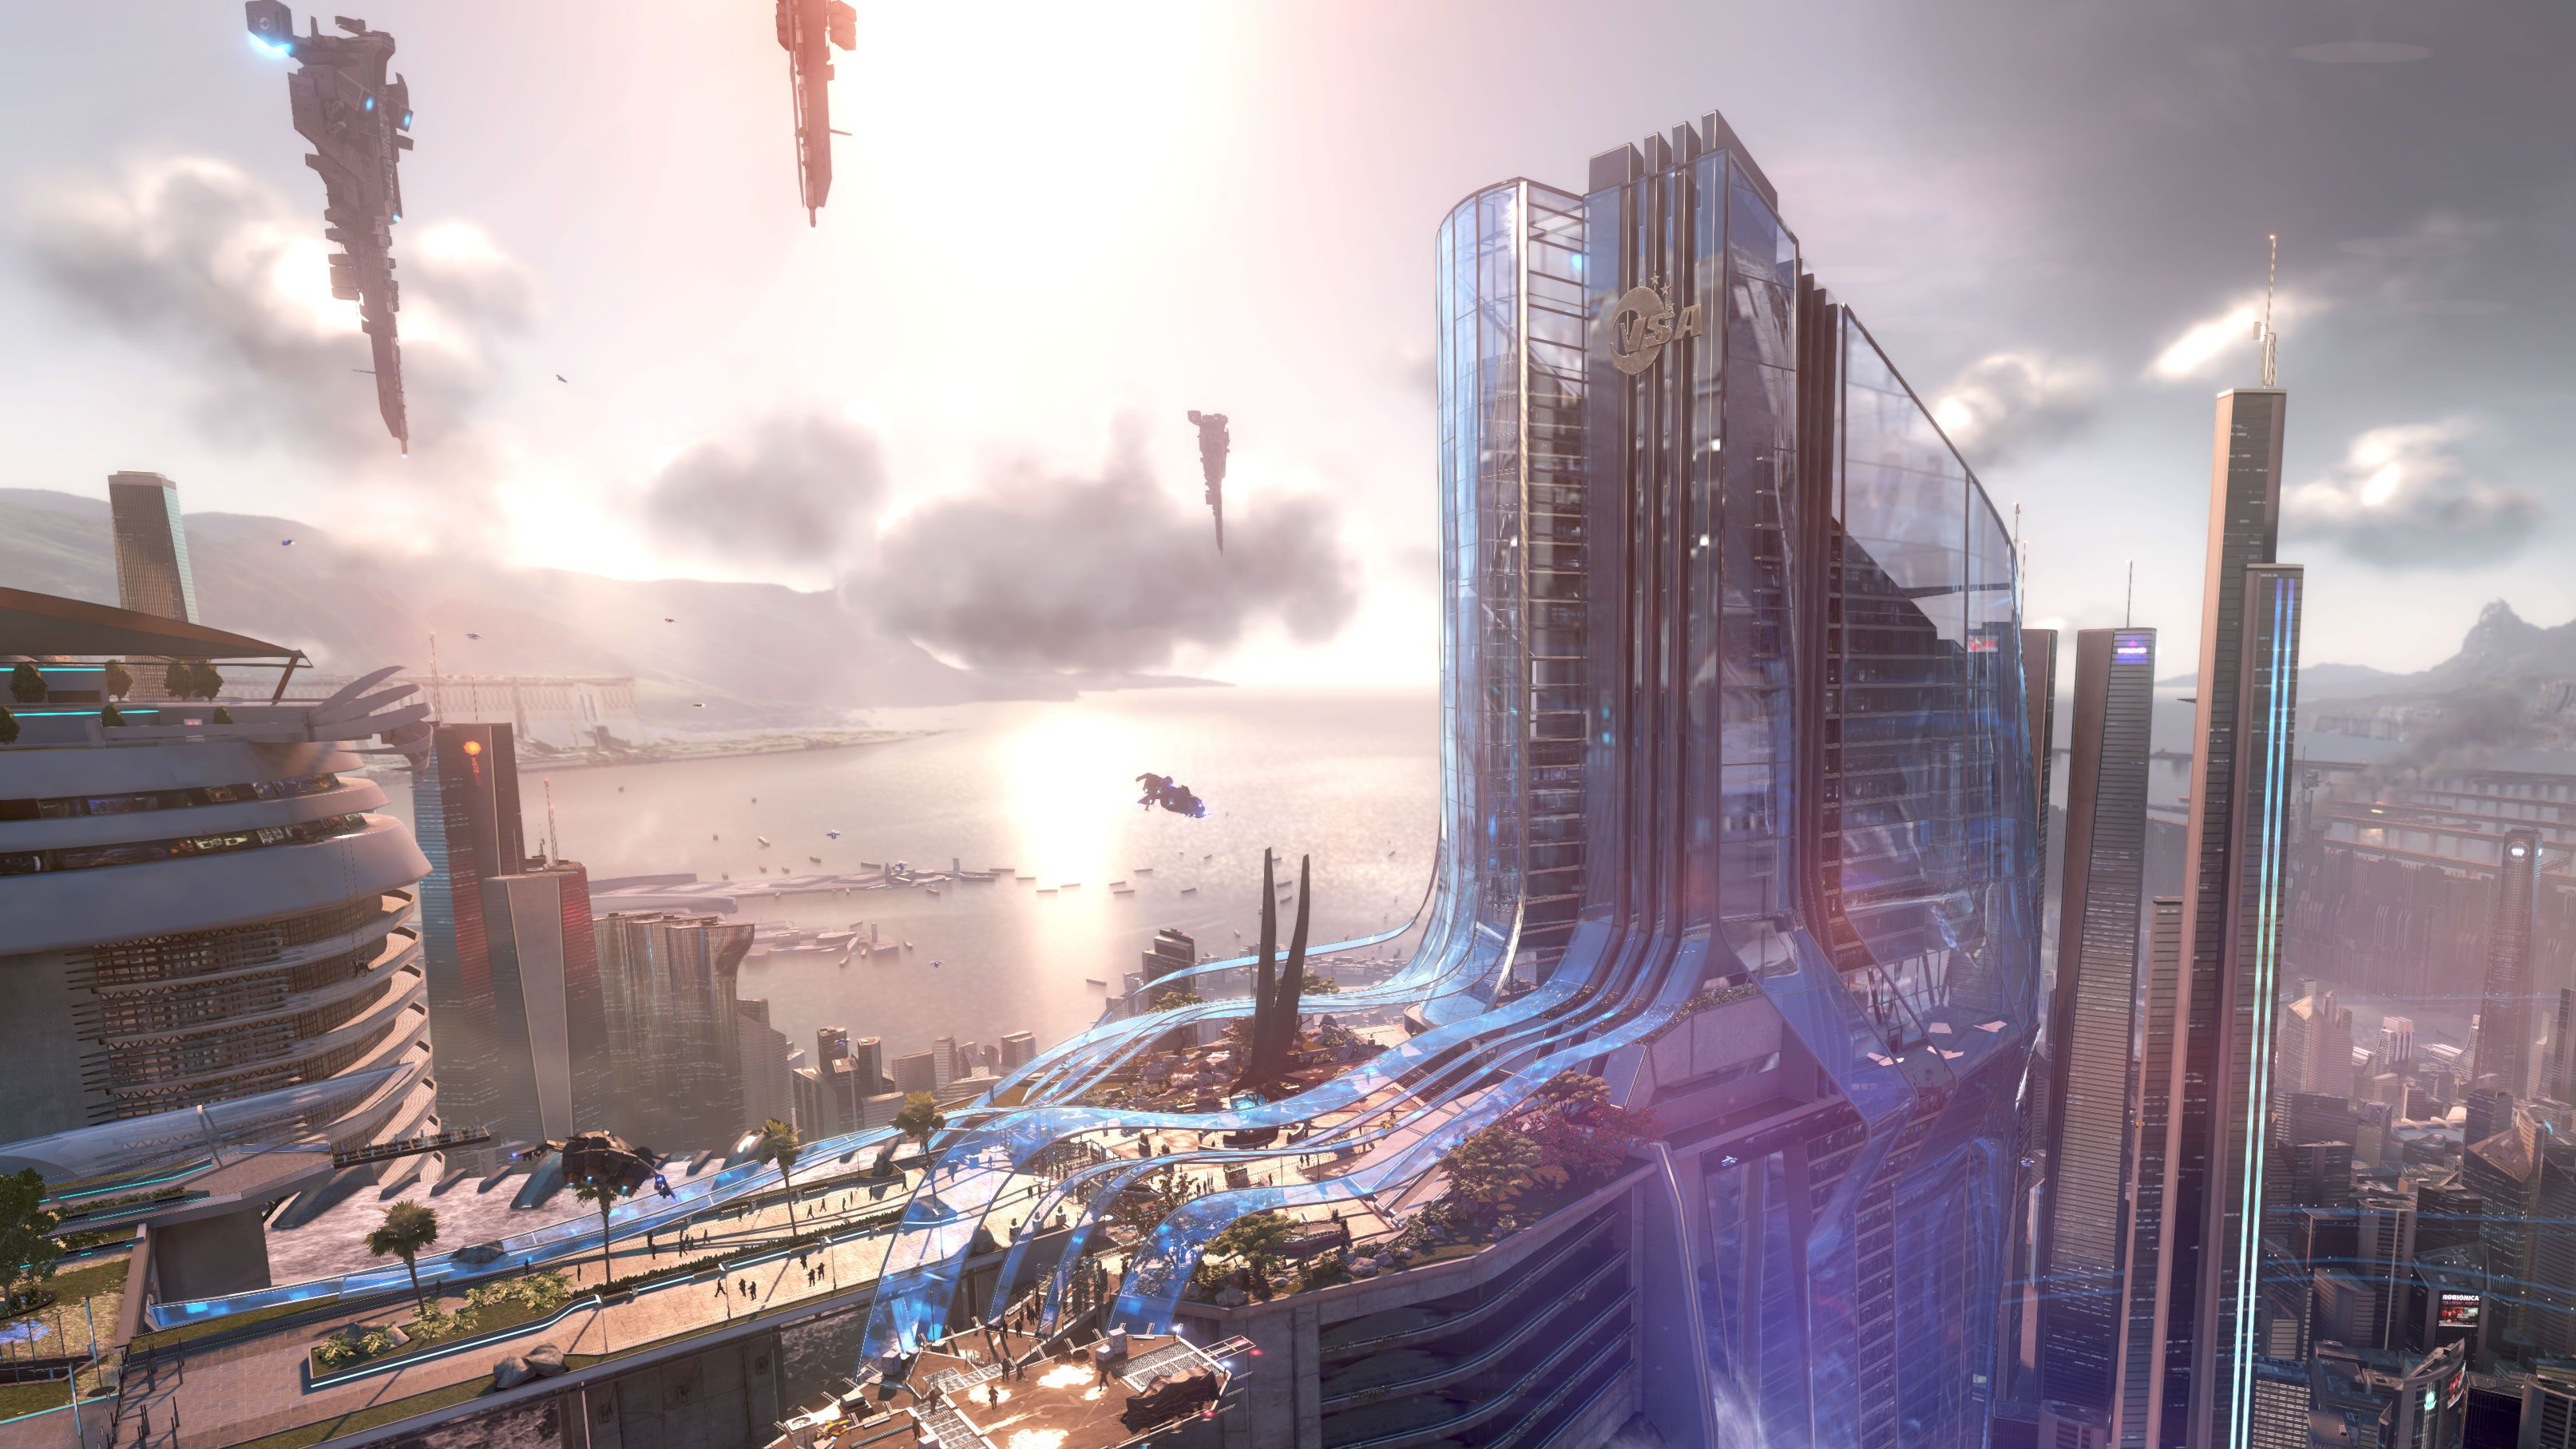 3226x1815 - Sci Fi City Wallpapers 6